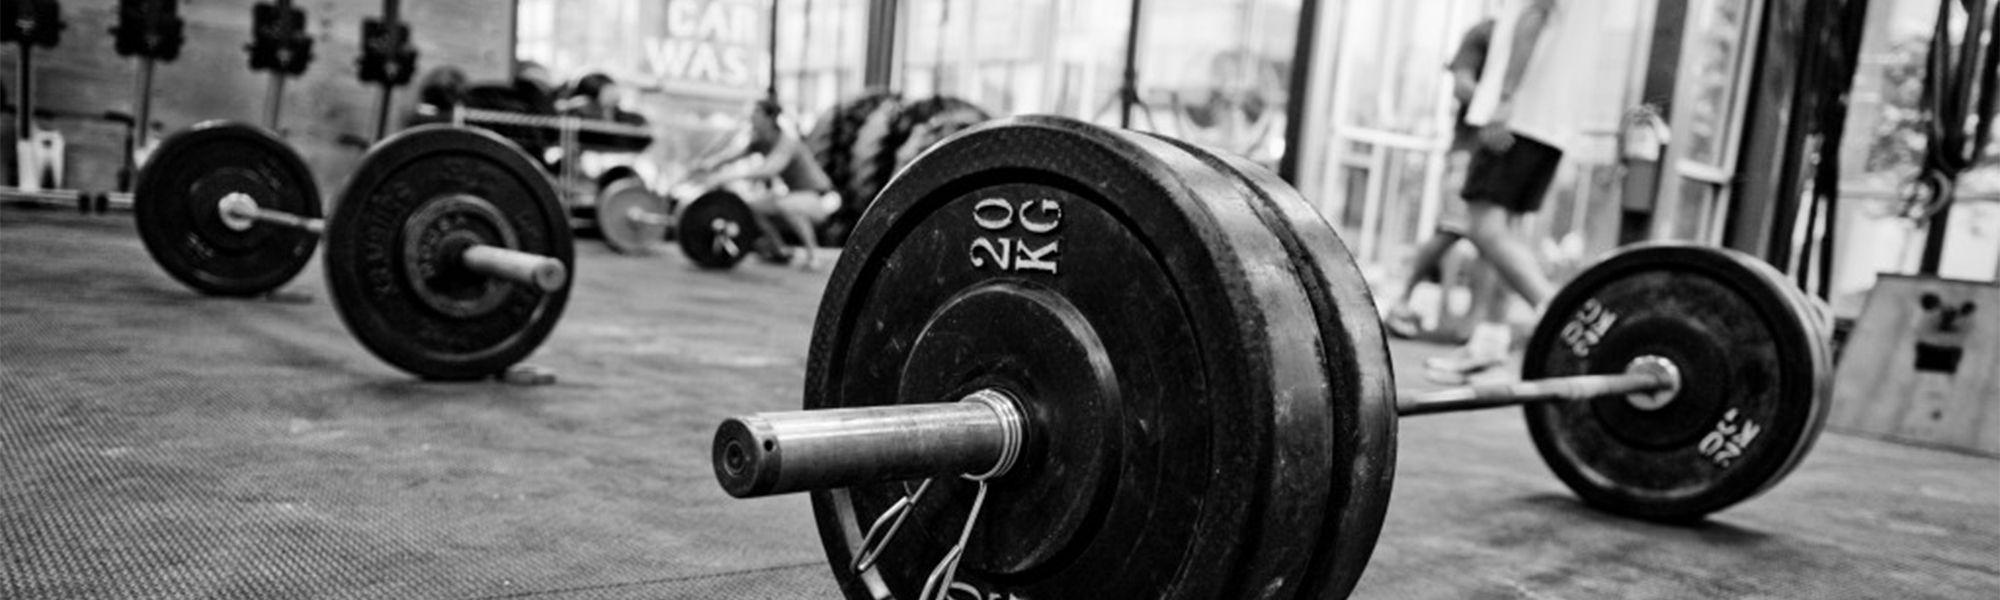 6 Week Intake MORNINGS- Wanganui Barbell – Wanganui Barbell